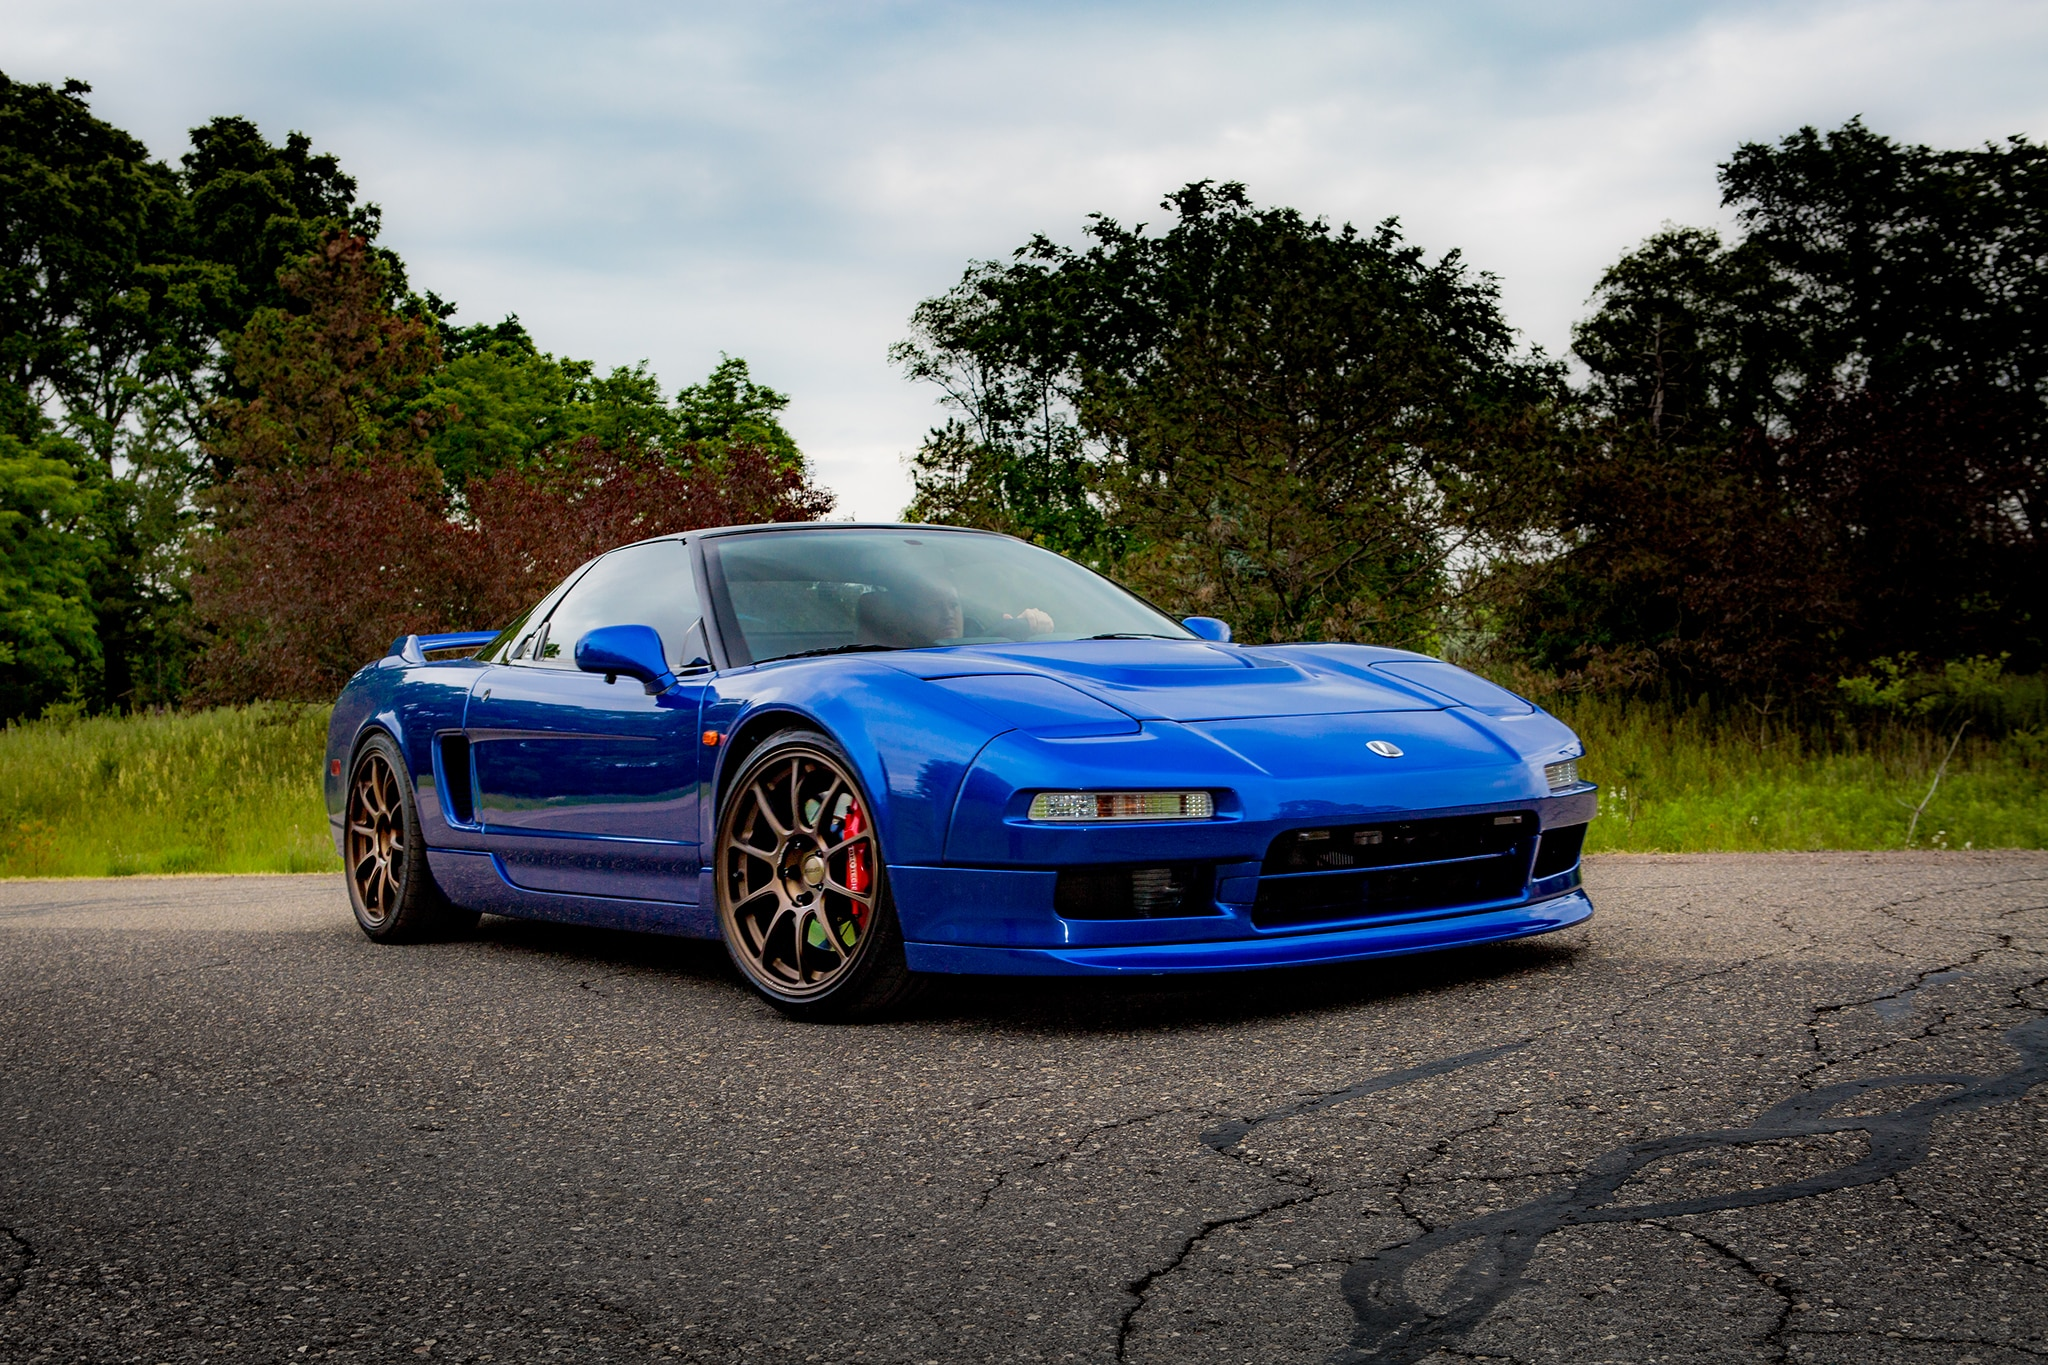 Acura >> Outside of Time: Driving the Clarion Builds 1991 Acura NSX